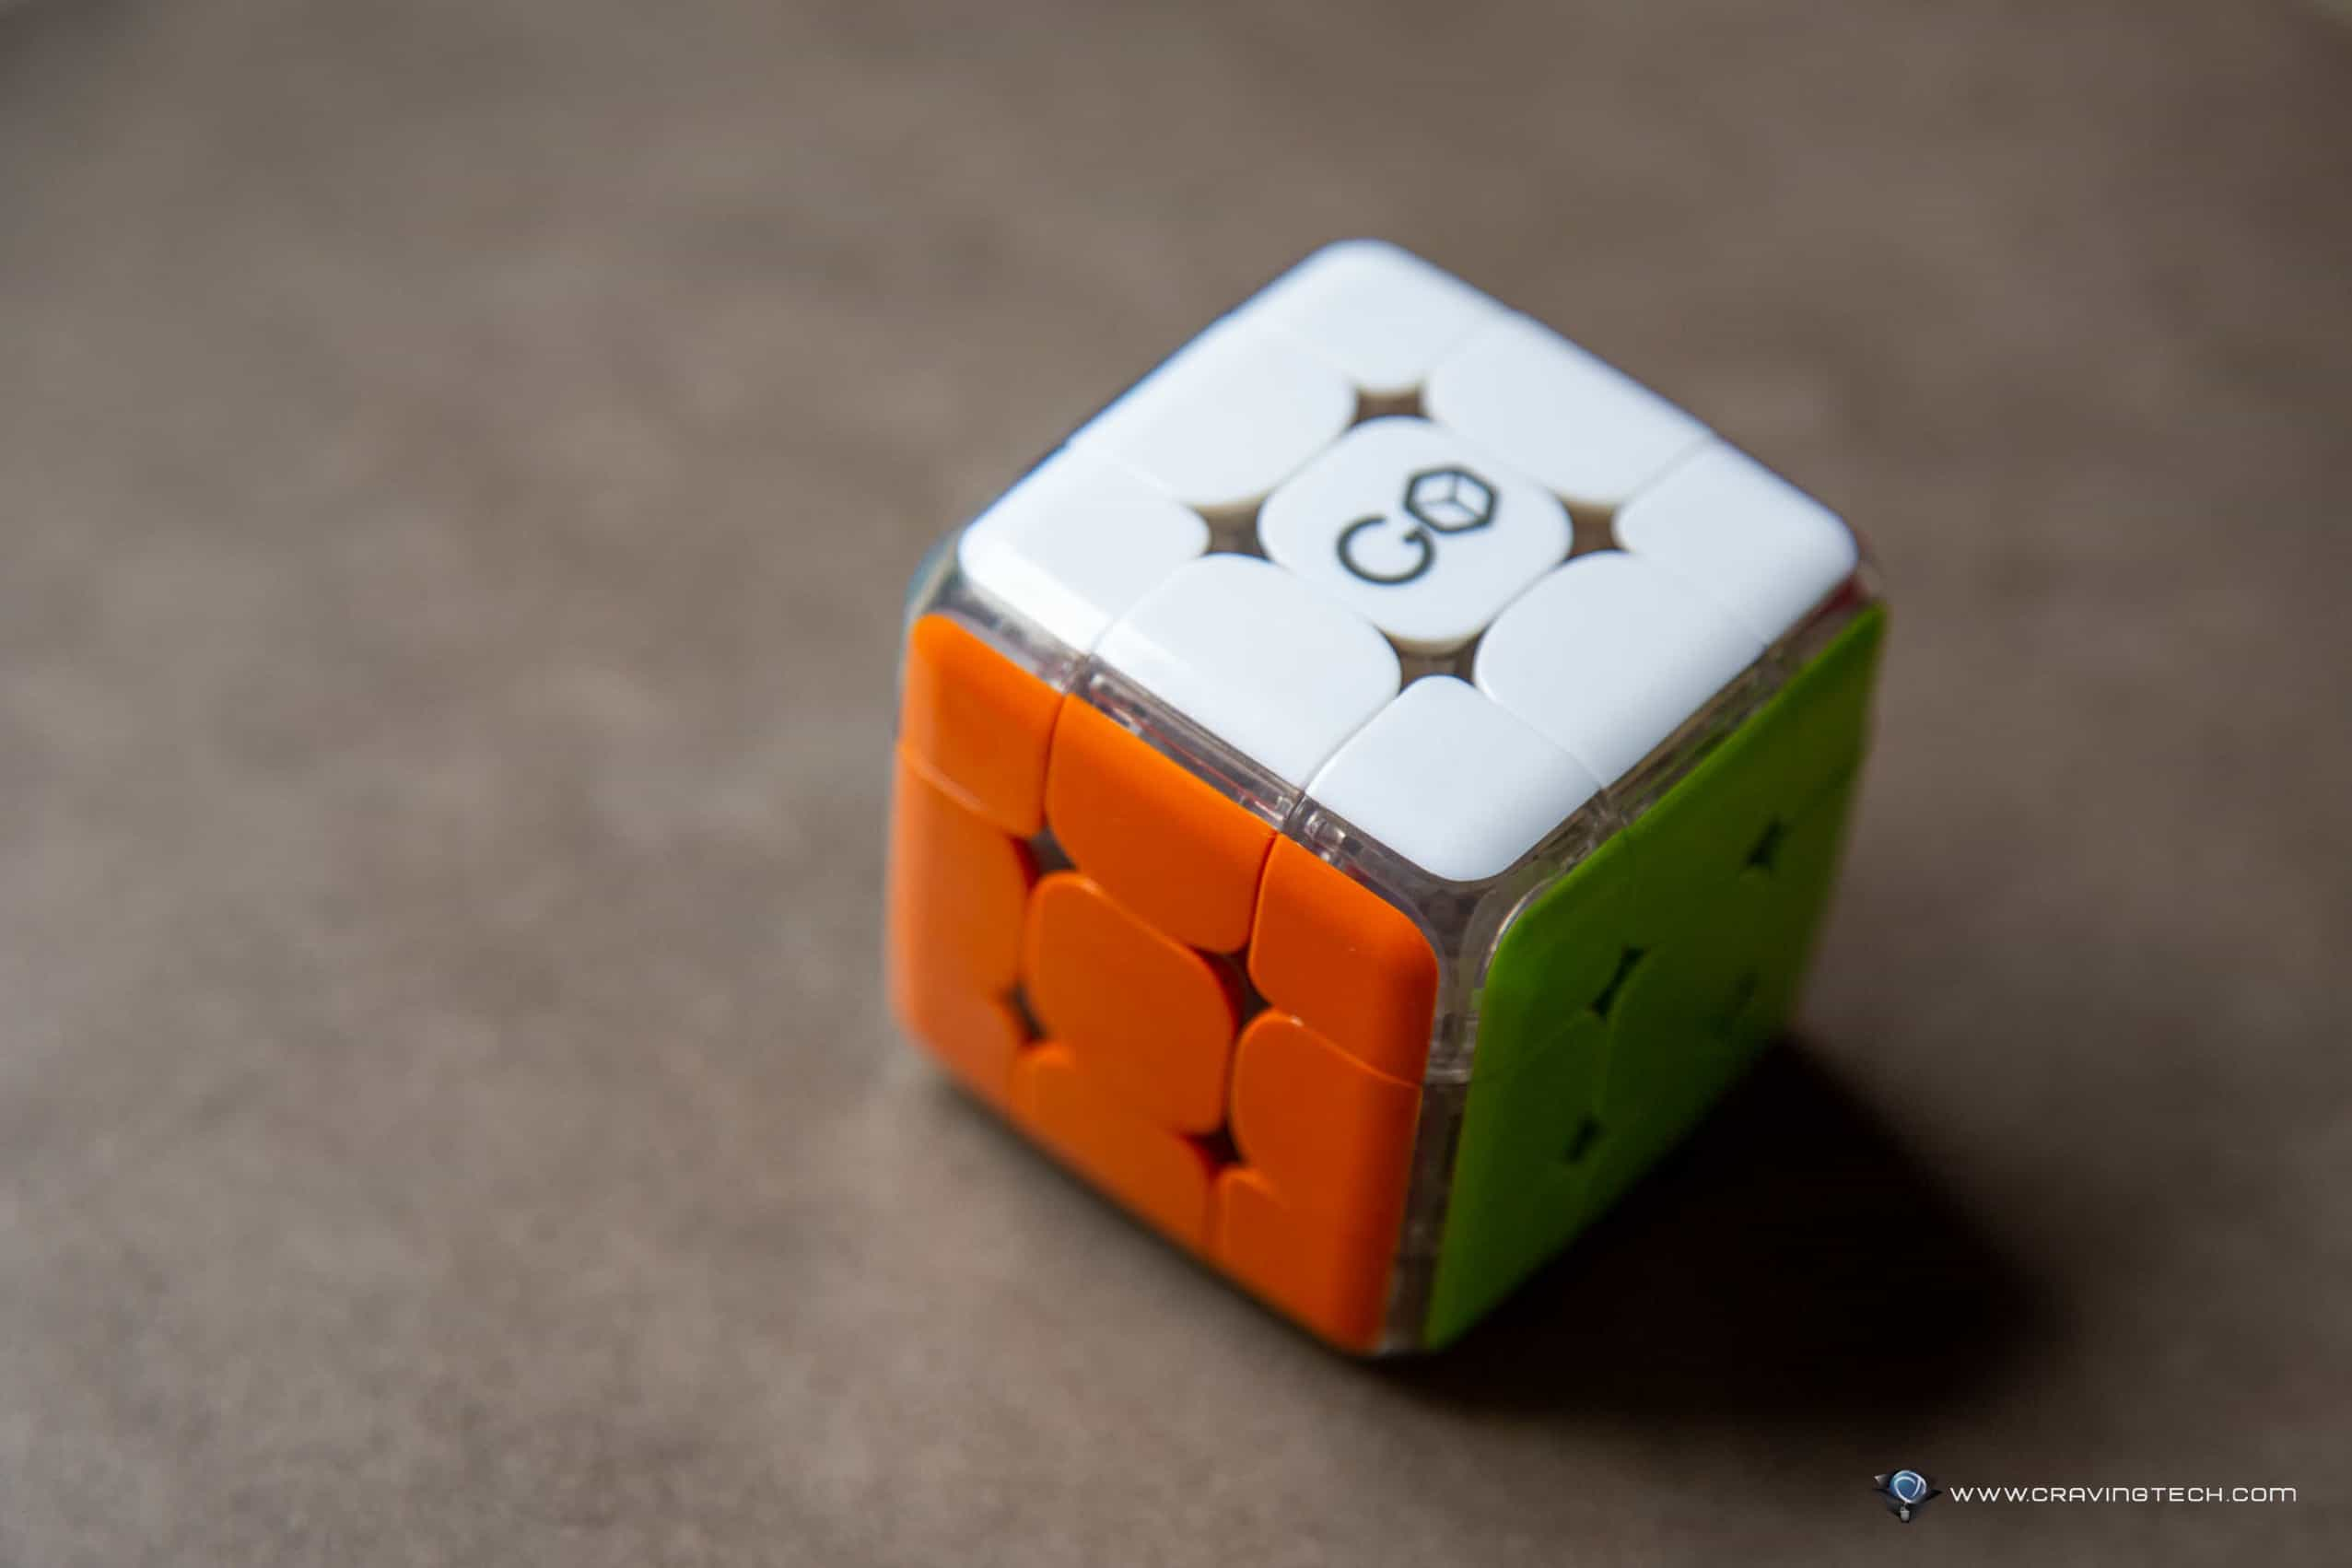 Learn how to solve the Rubik's cube in a smart, fun way – GoCube Edge Smart Cube Review